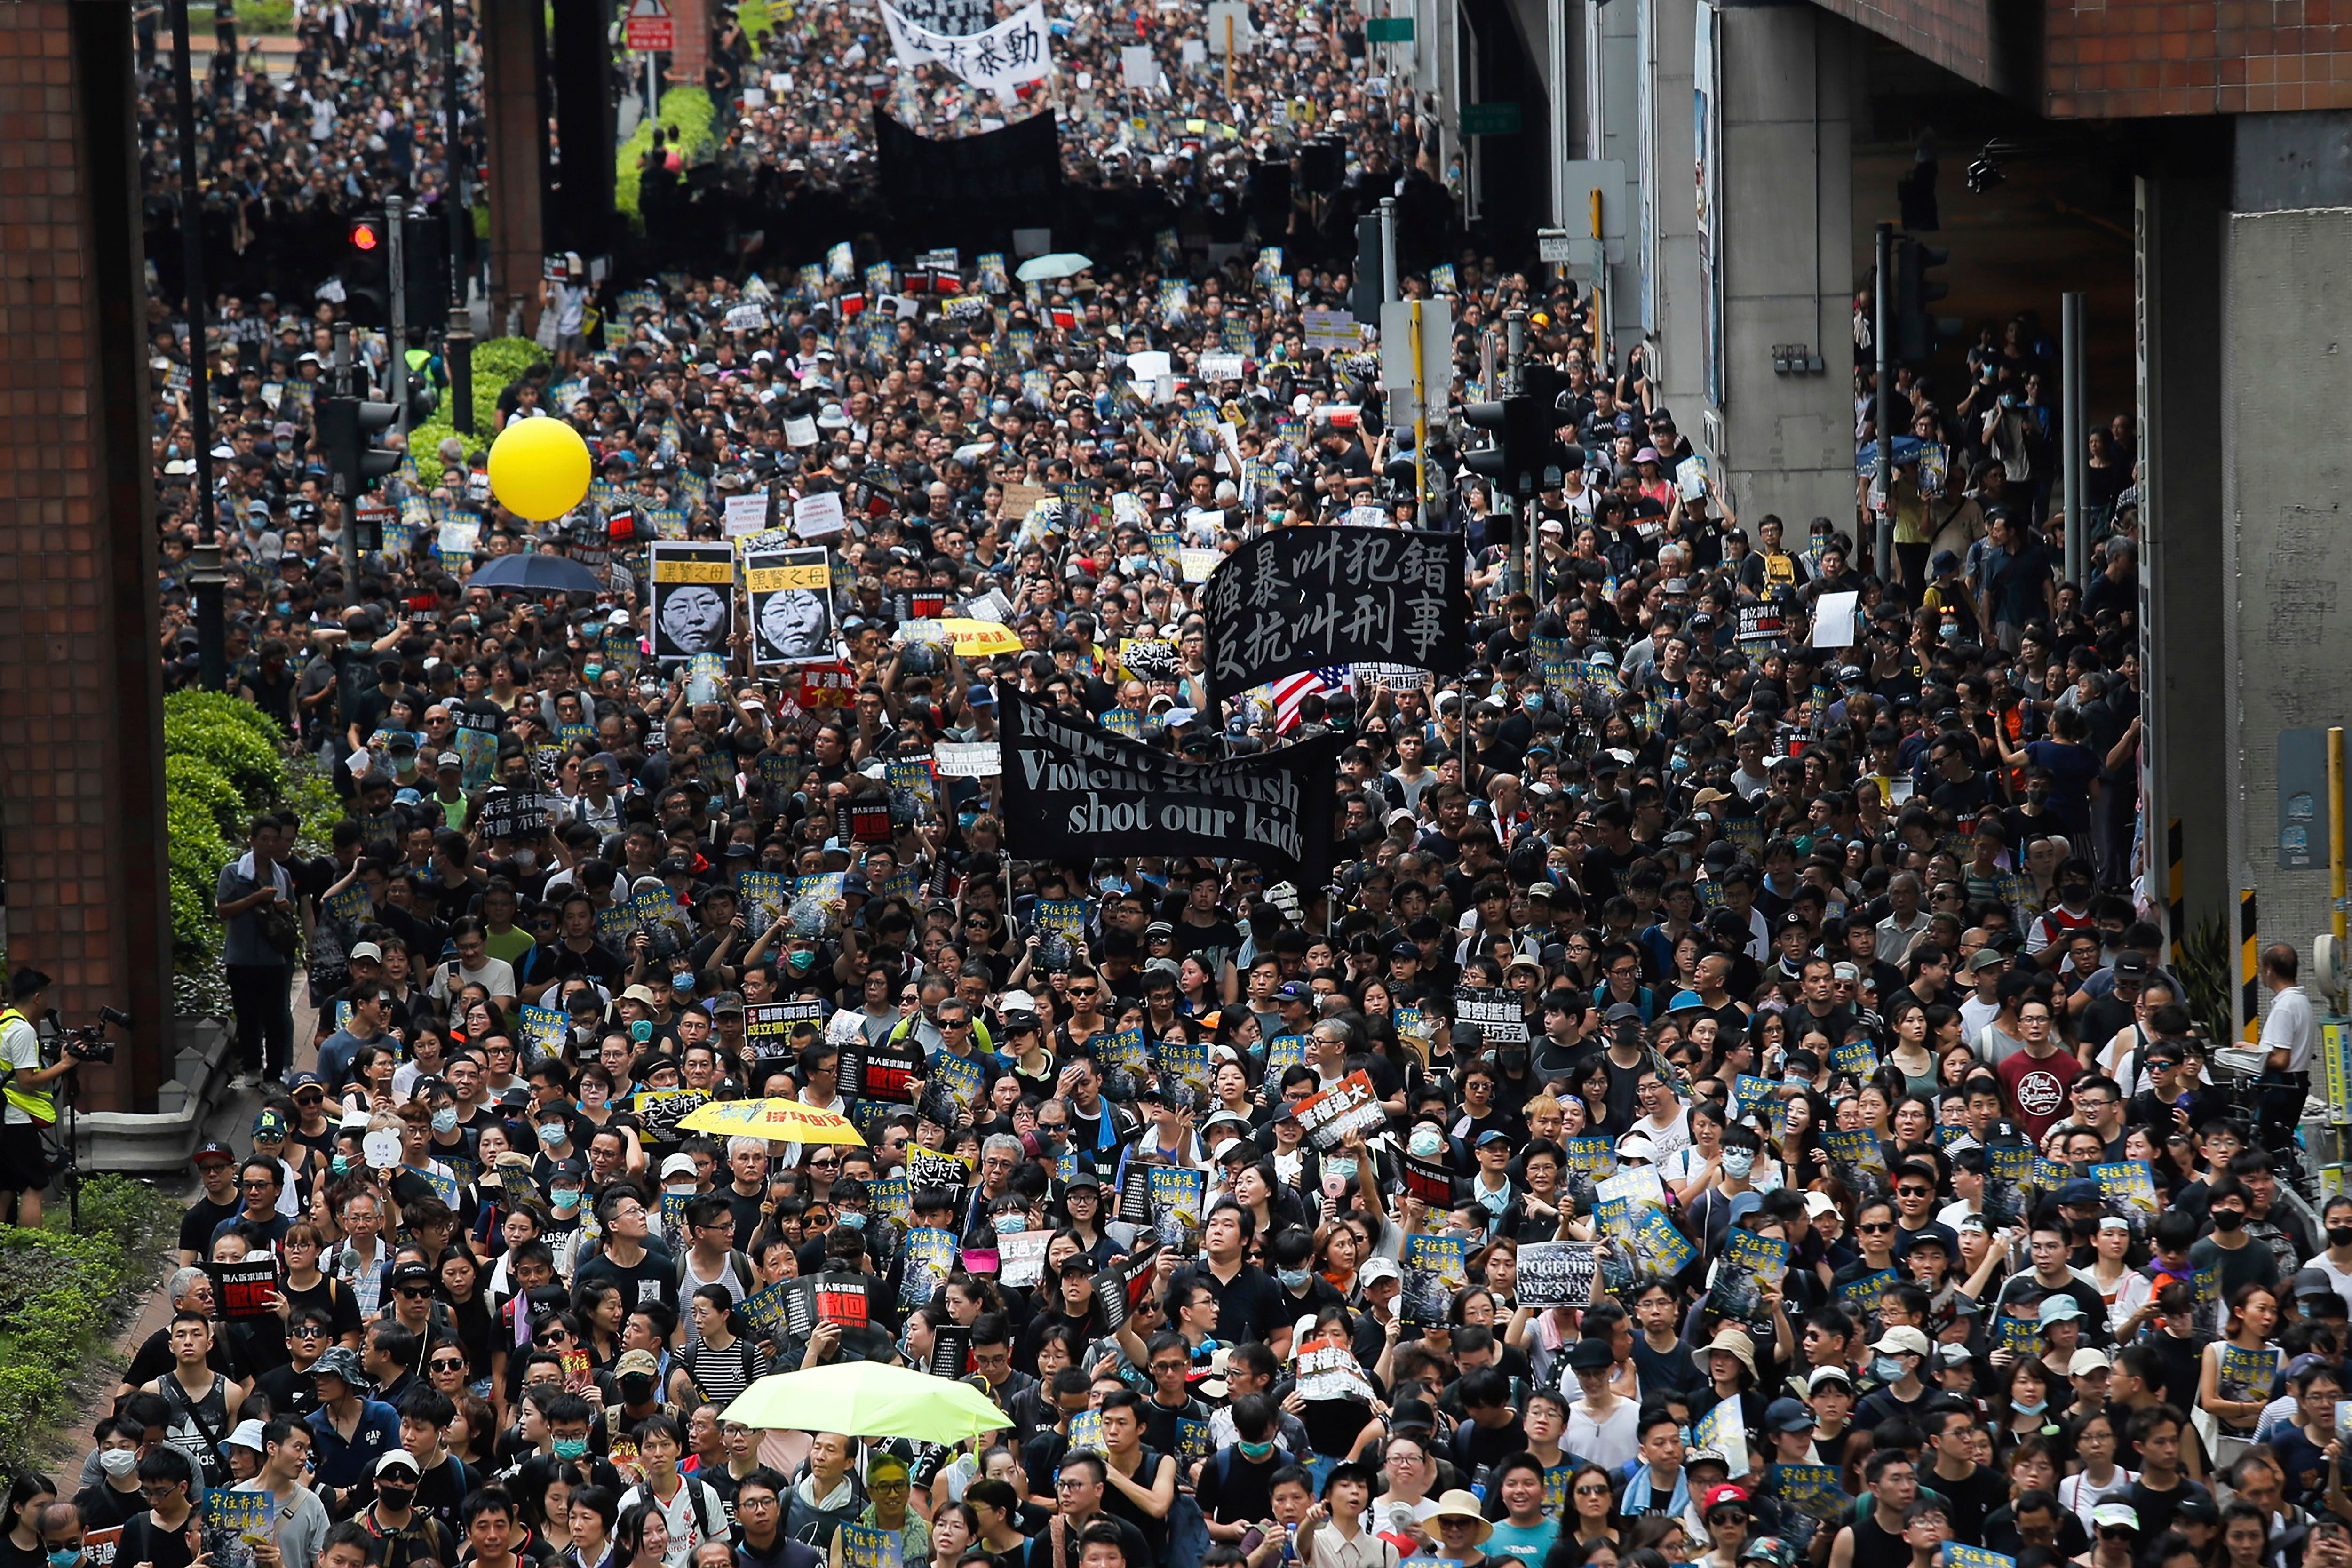 Protesters march through the Sha Tin District in Hong Kong, . Opponents of a proposed Hong Kong extradition law have begun a protest march, adding to an outpouring of complaints the territory's pro-Beijing government is eroding its freedoms and autonomyProtests, Hong Kong, Hong Kong - 14 Jul 2019